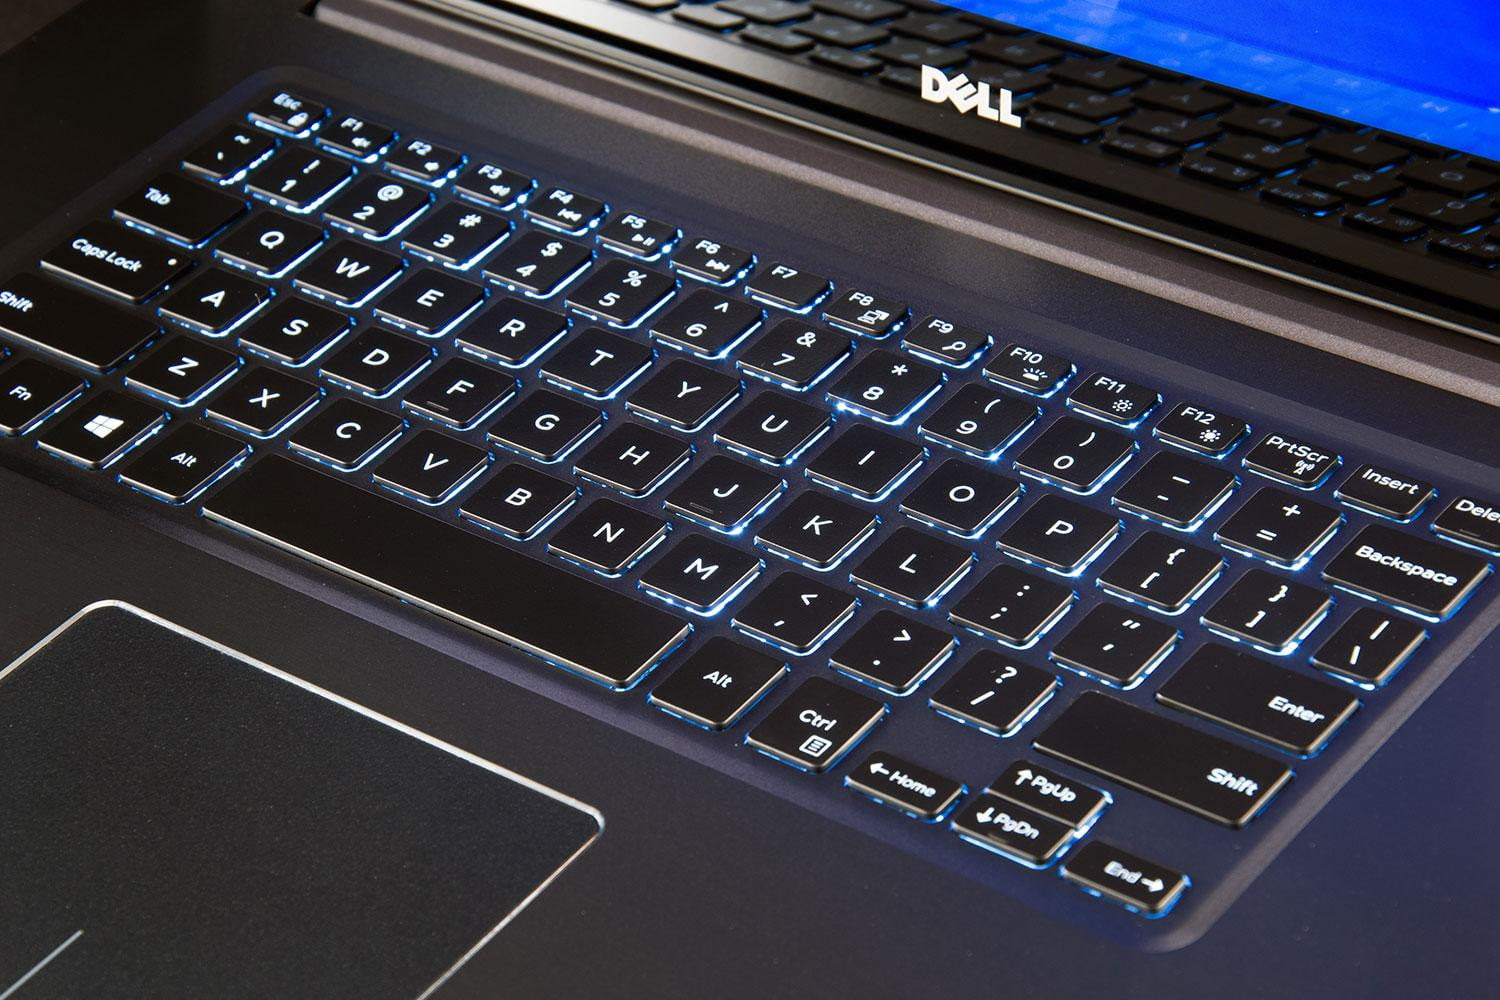 Dell Inspiron 15 7000 with 4K Display Review   Digital Trends